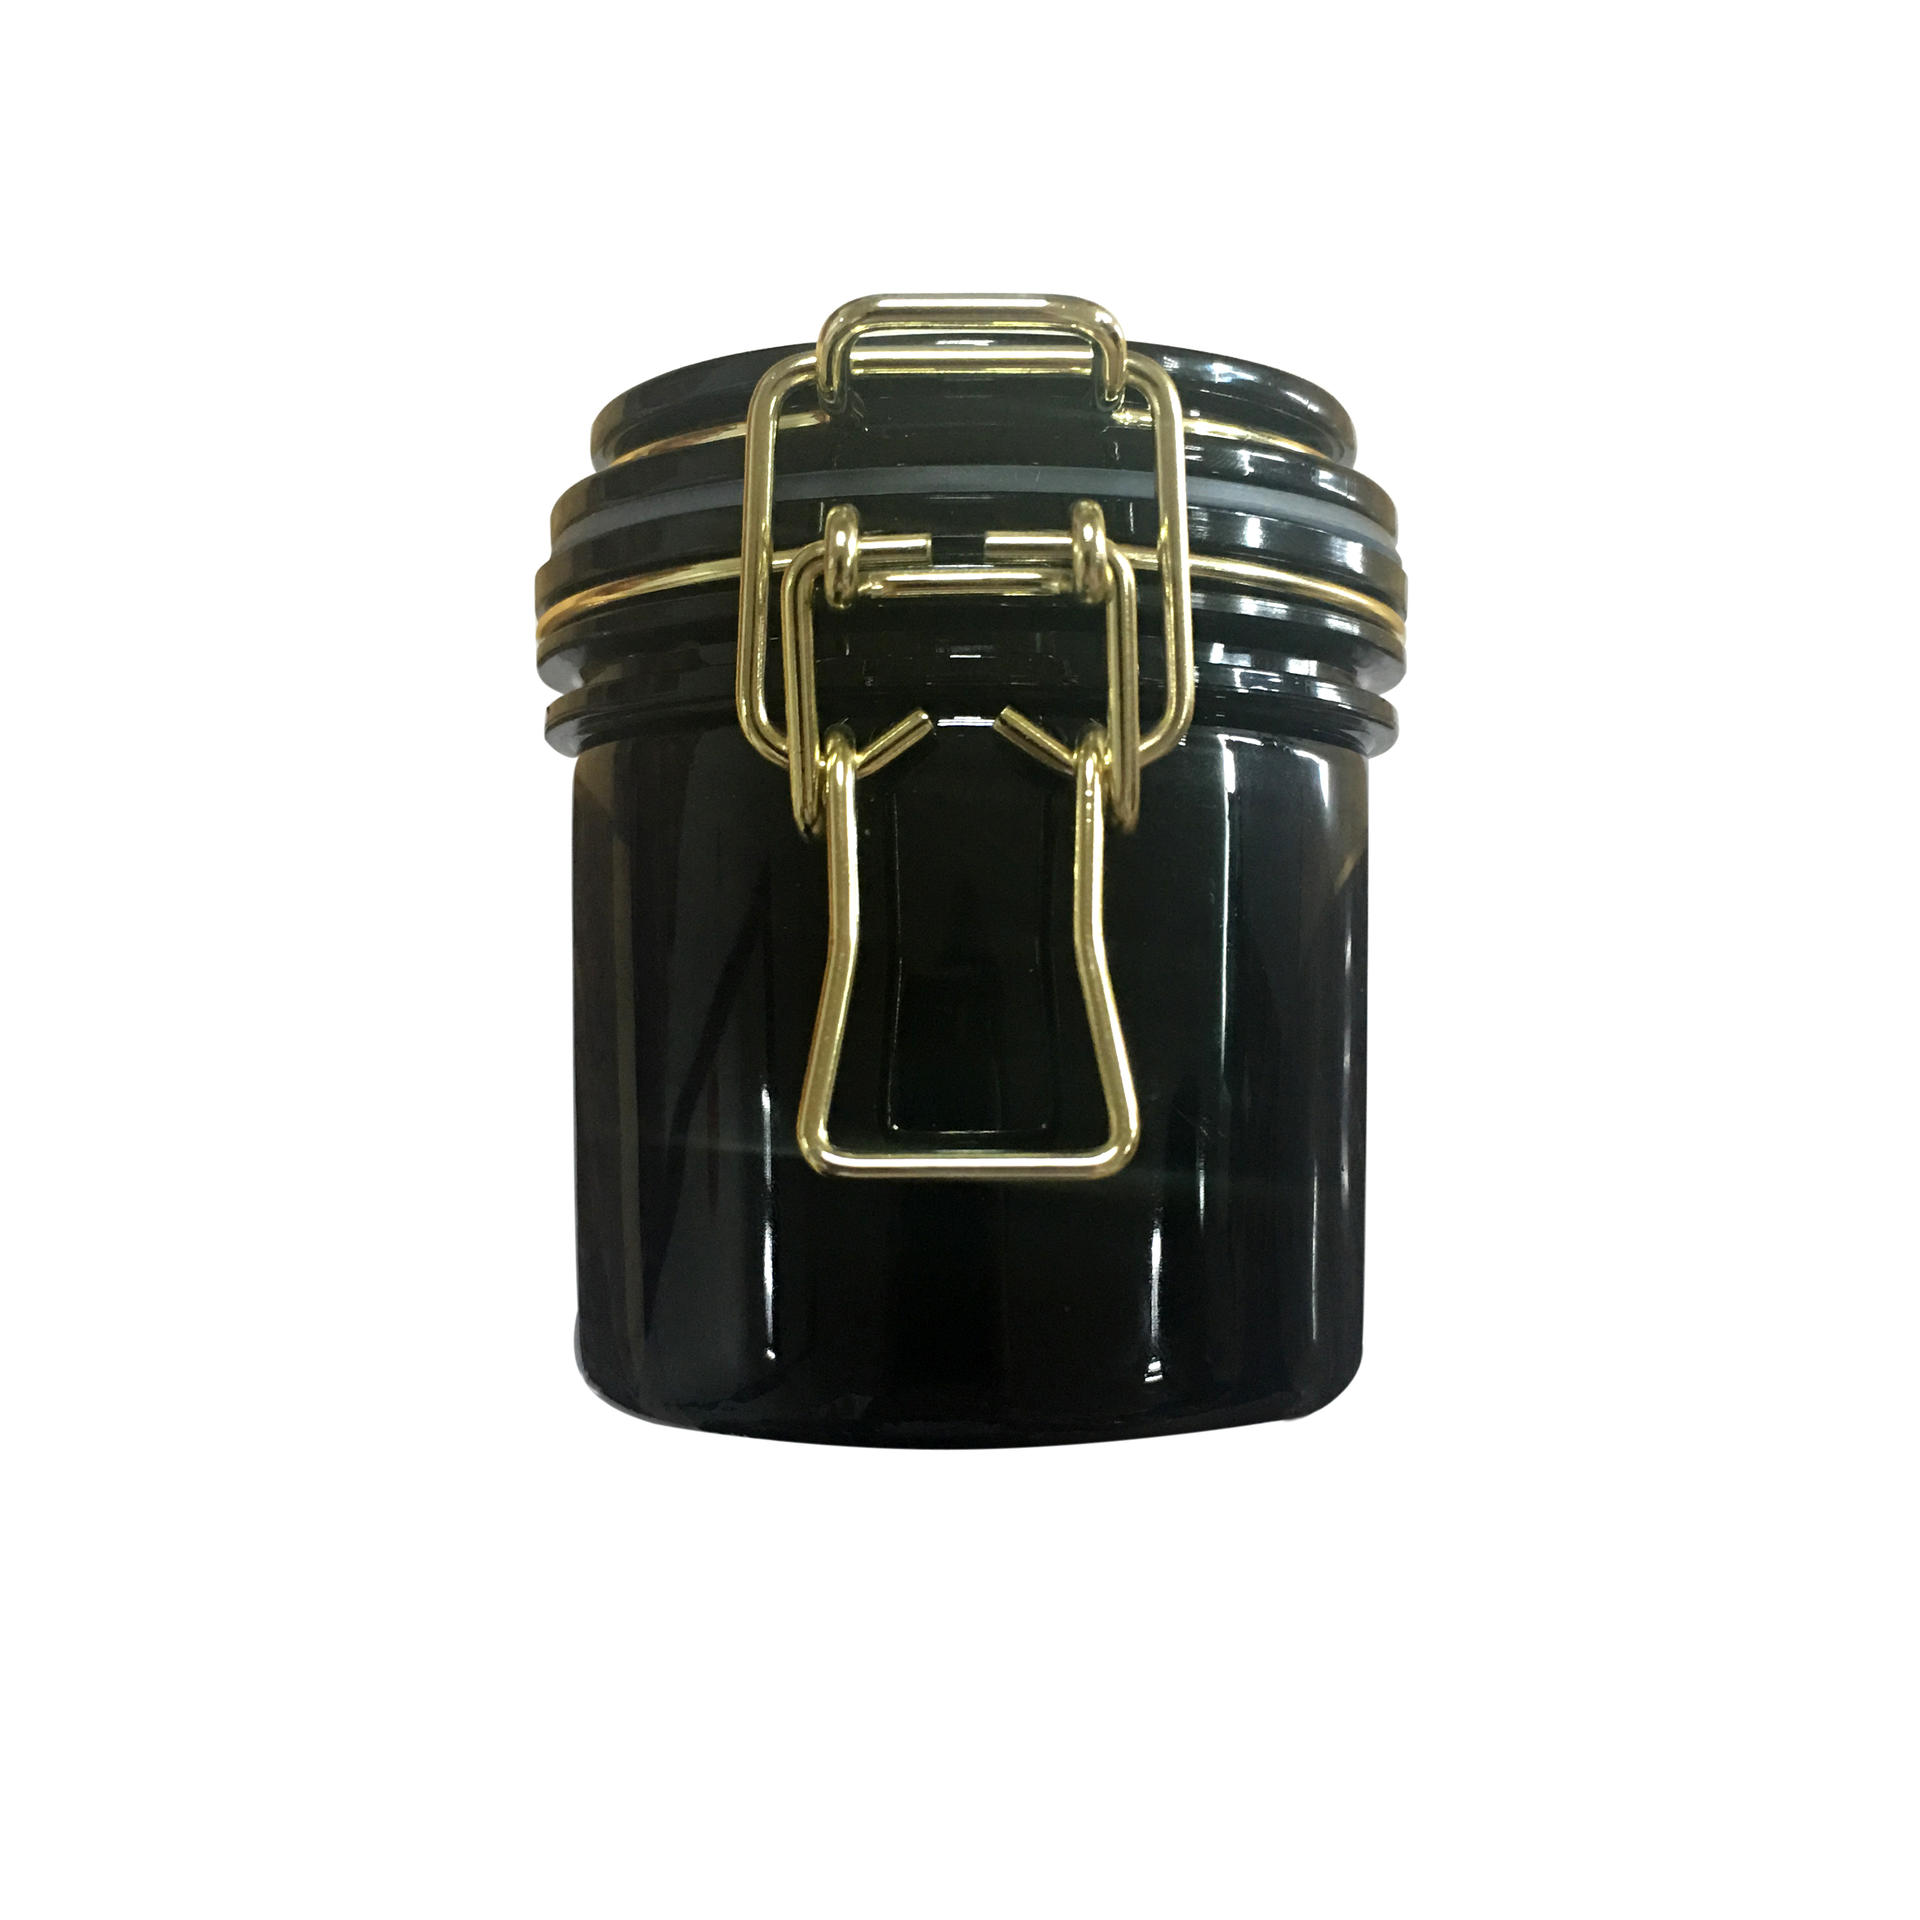 Black PET Plastic Food Mask Cosmetic Canning airtight Jar With Glod Clasp